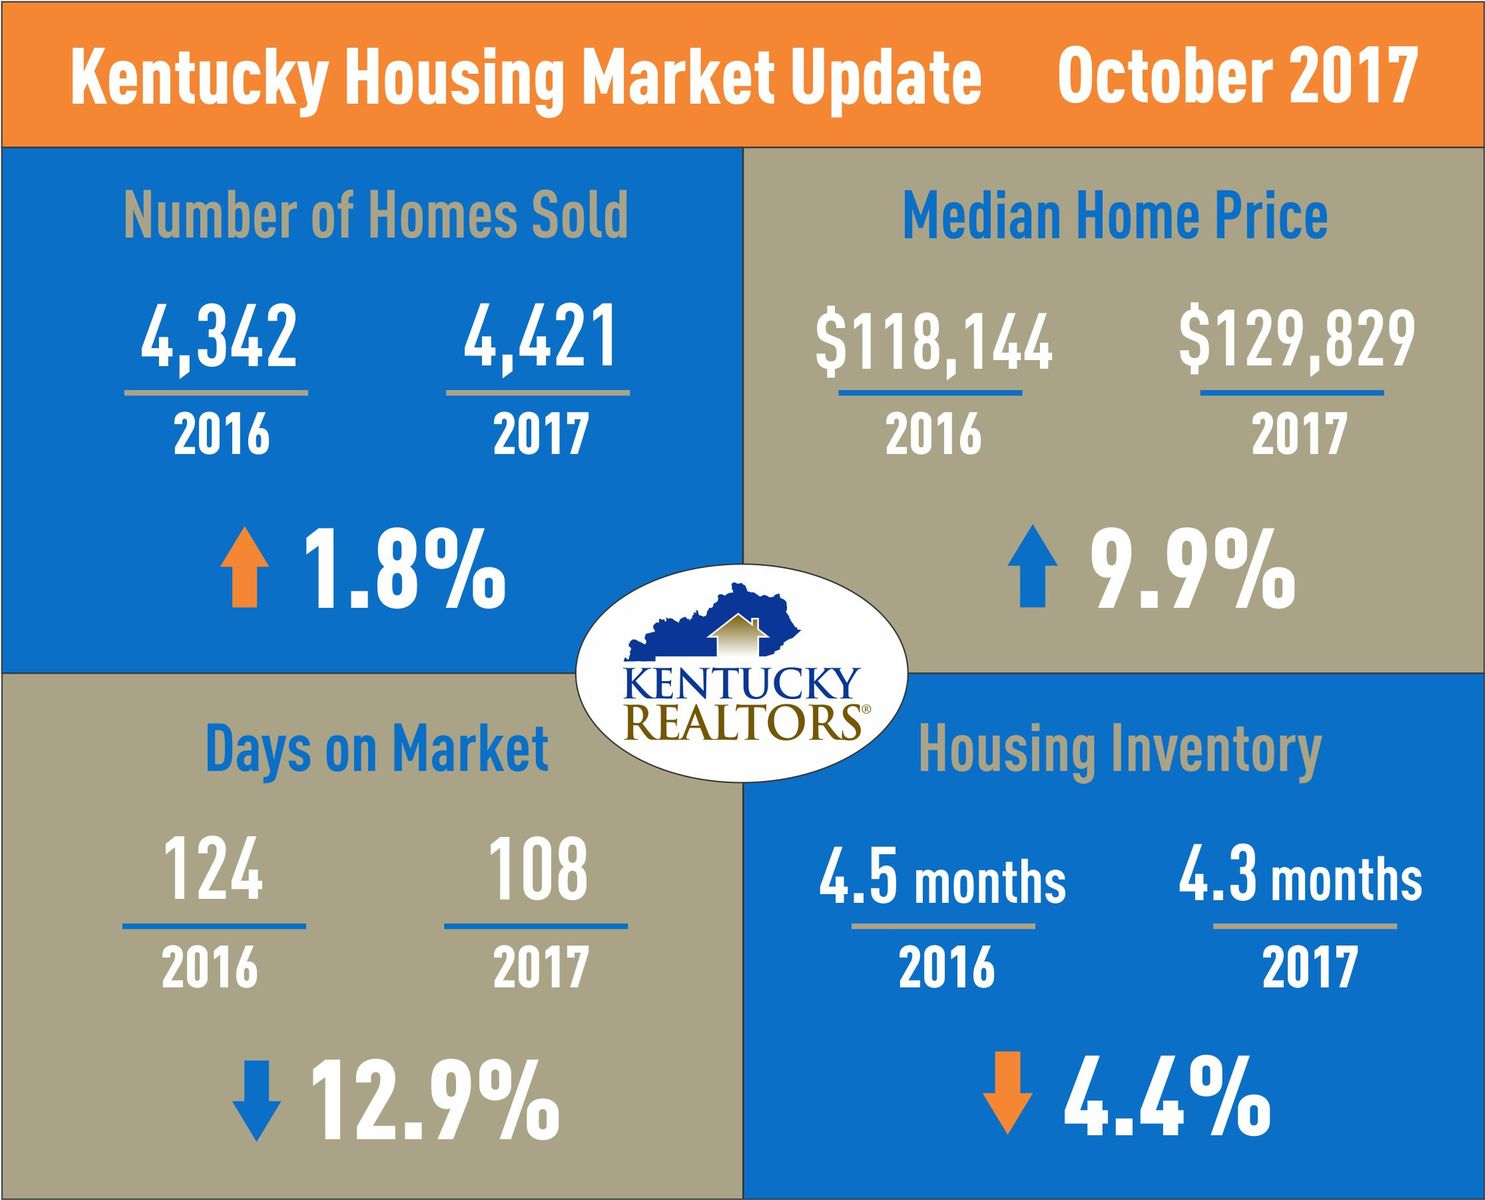 Kentucky Housing Market Update Oct 2017